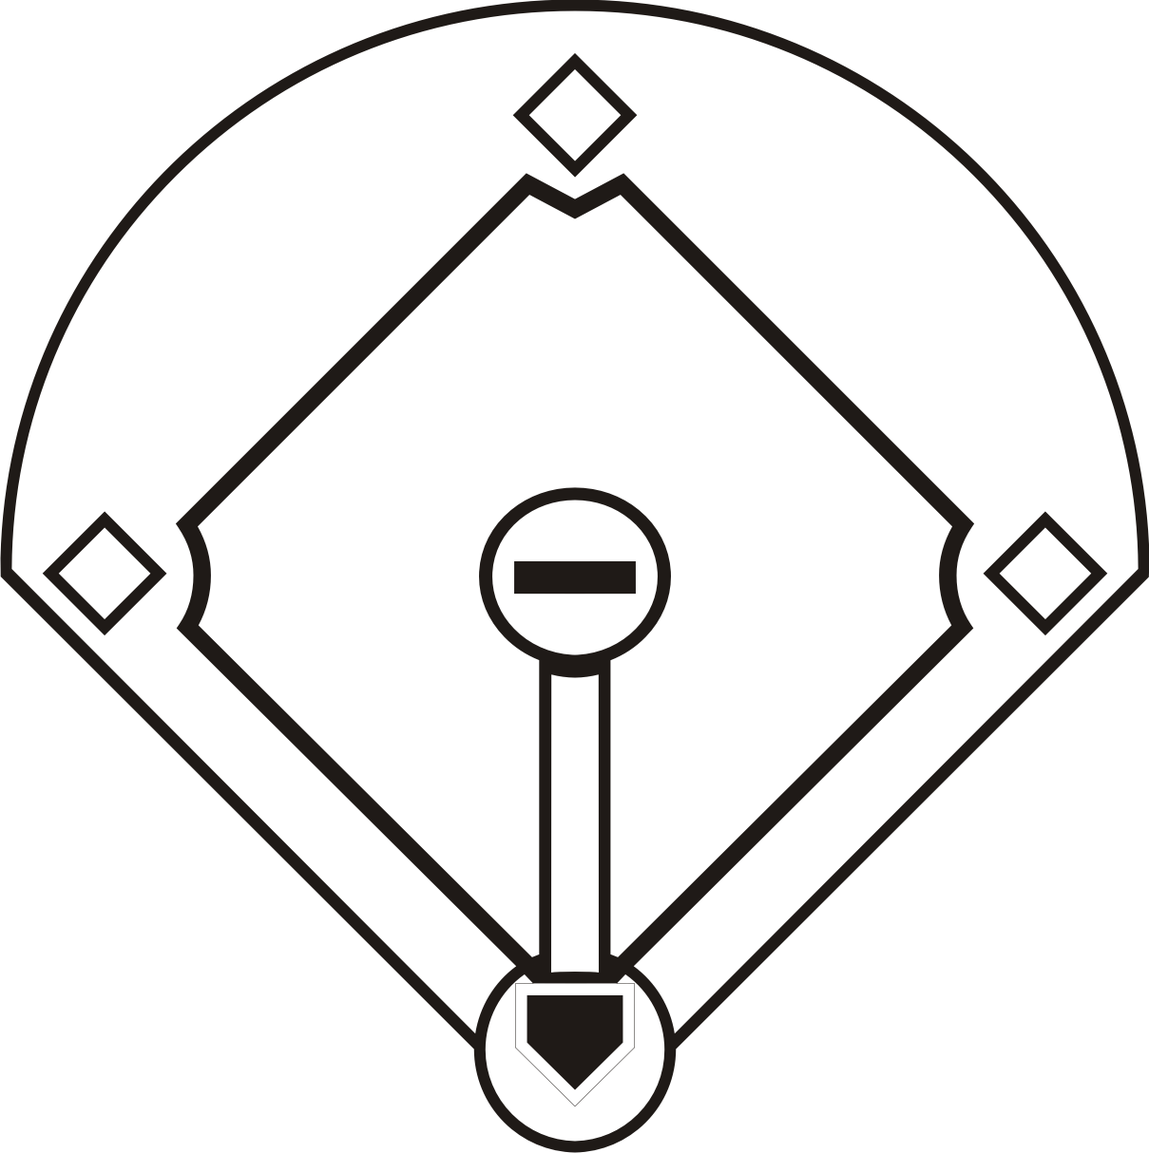 Diamonds clipart softball.